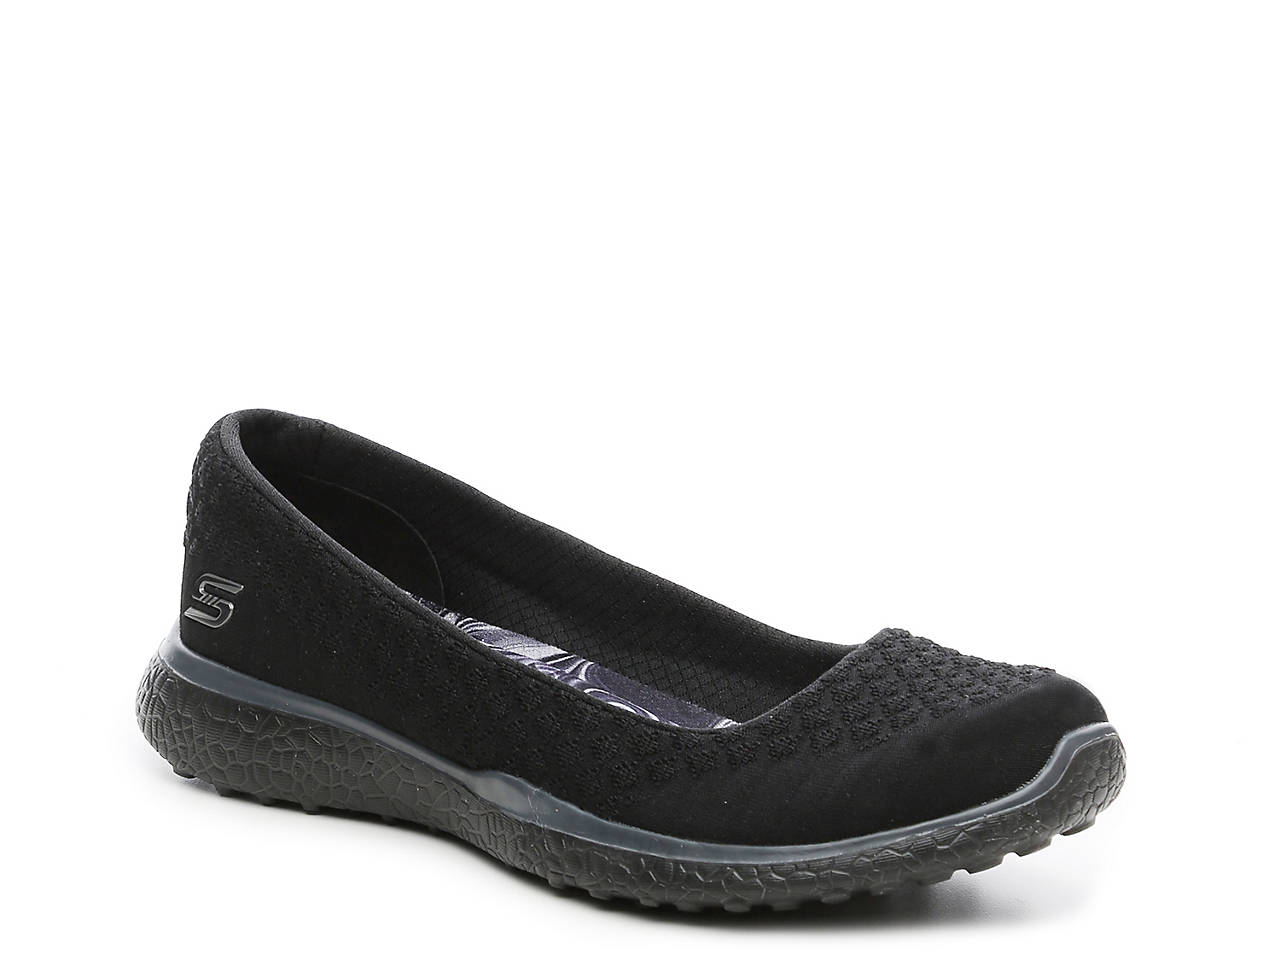 29455c8d7201 Skechers Microburst Slip-On Women s Shoes